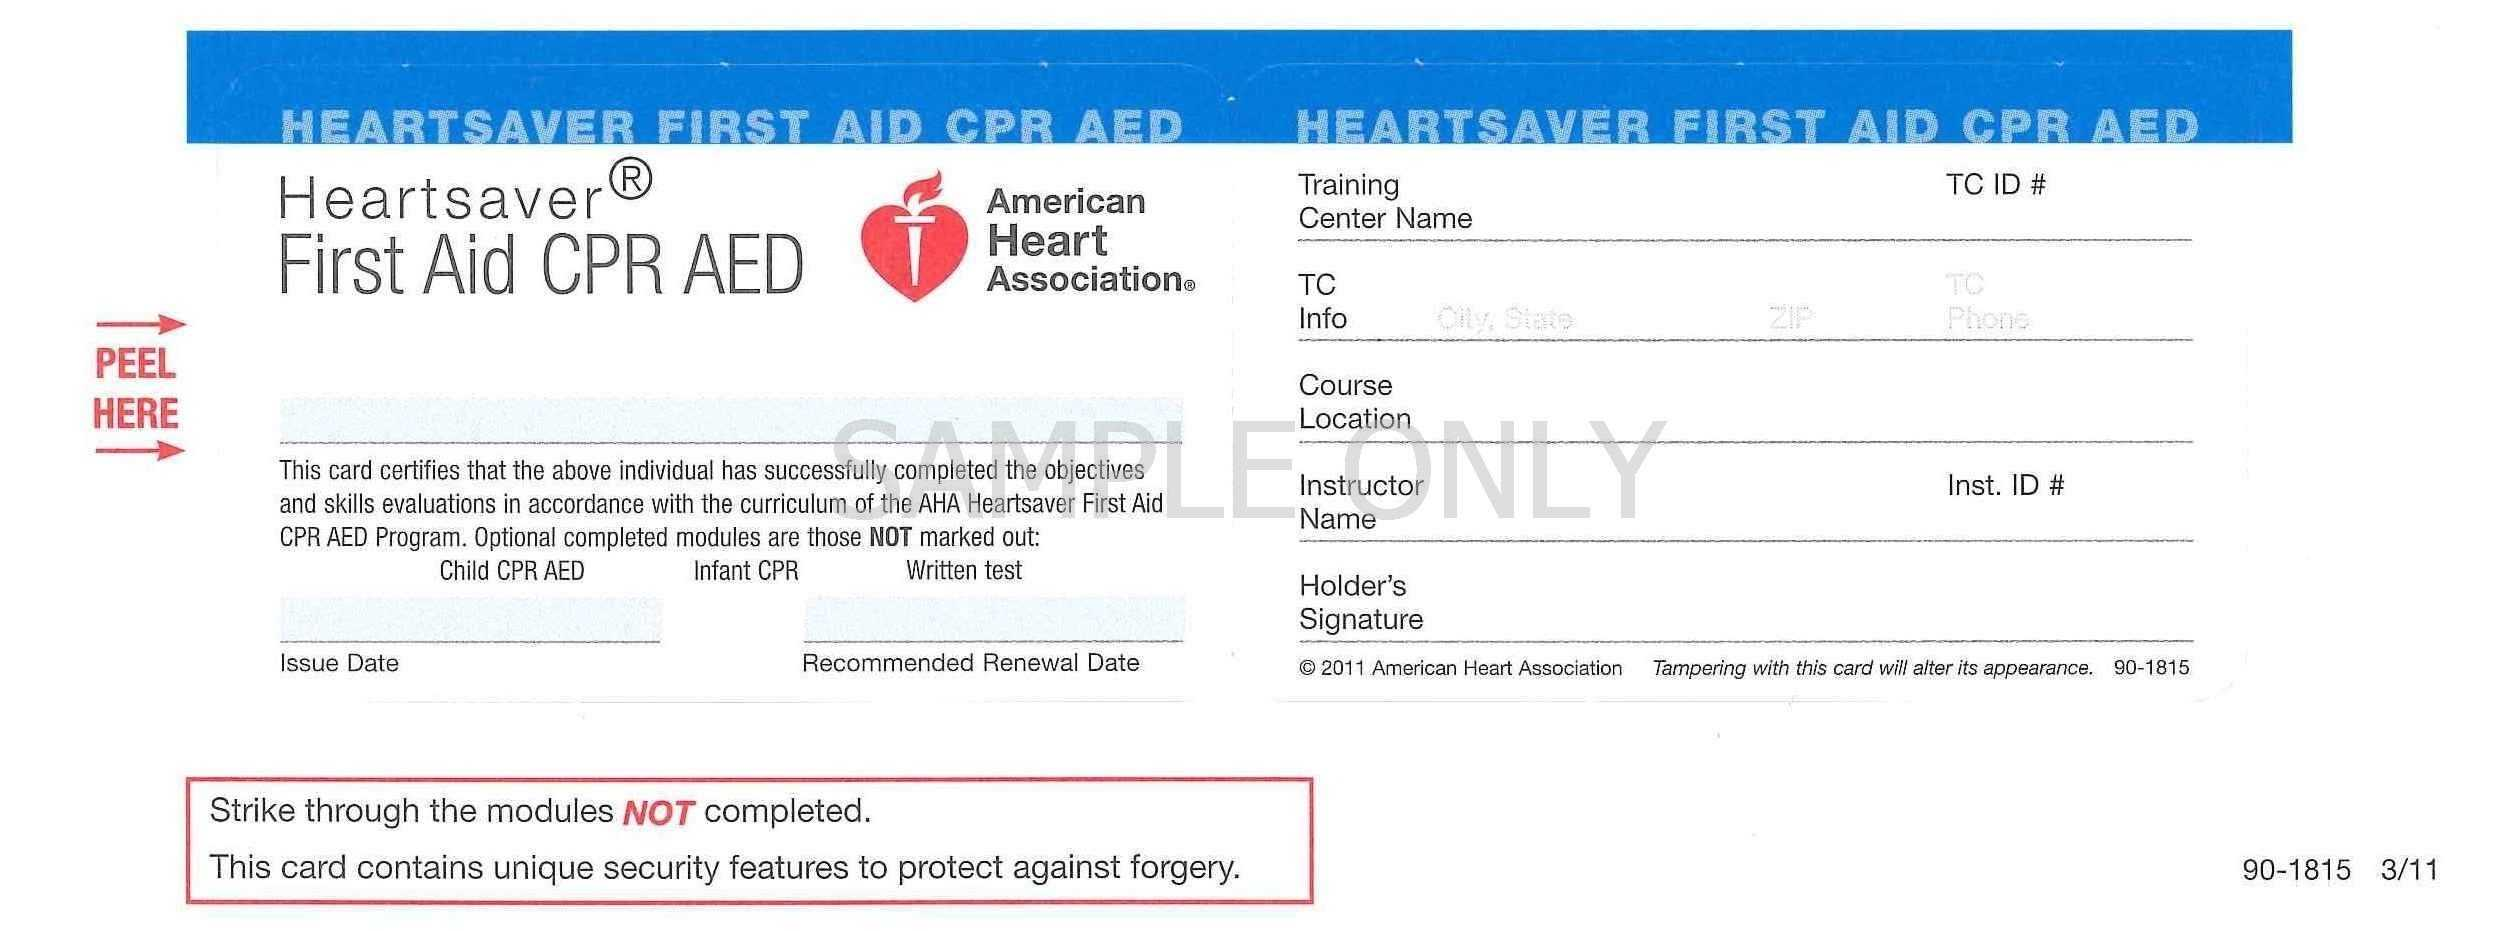 Cf6 Cpr Card Template | Wiring Library In Cpr Card Template